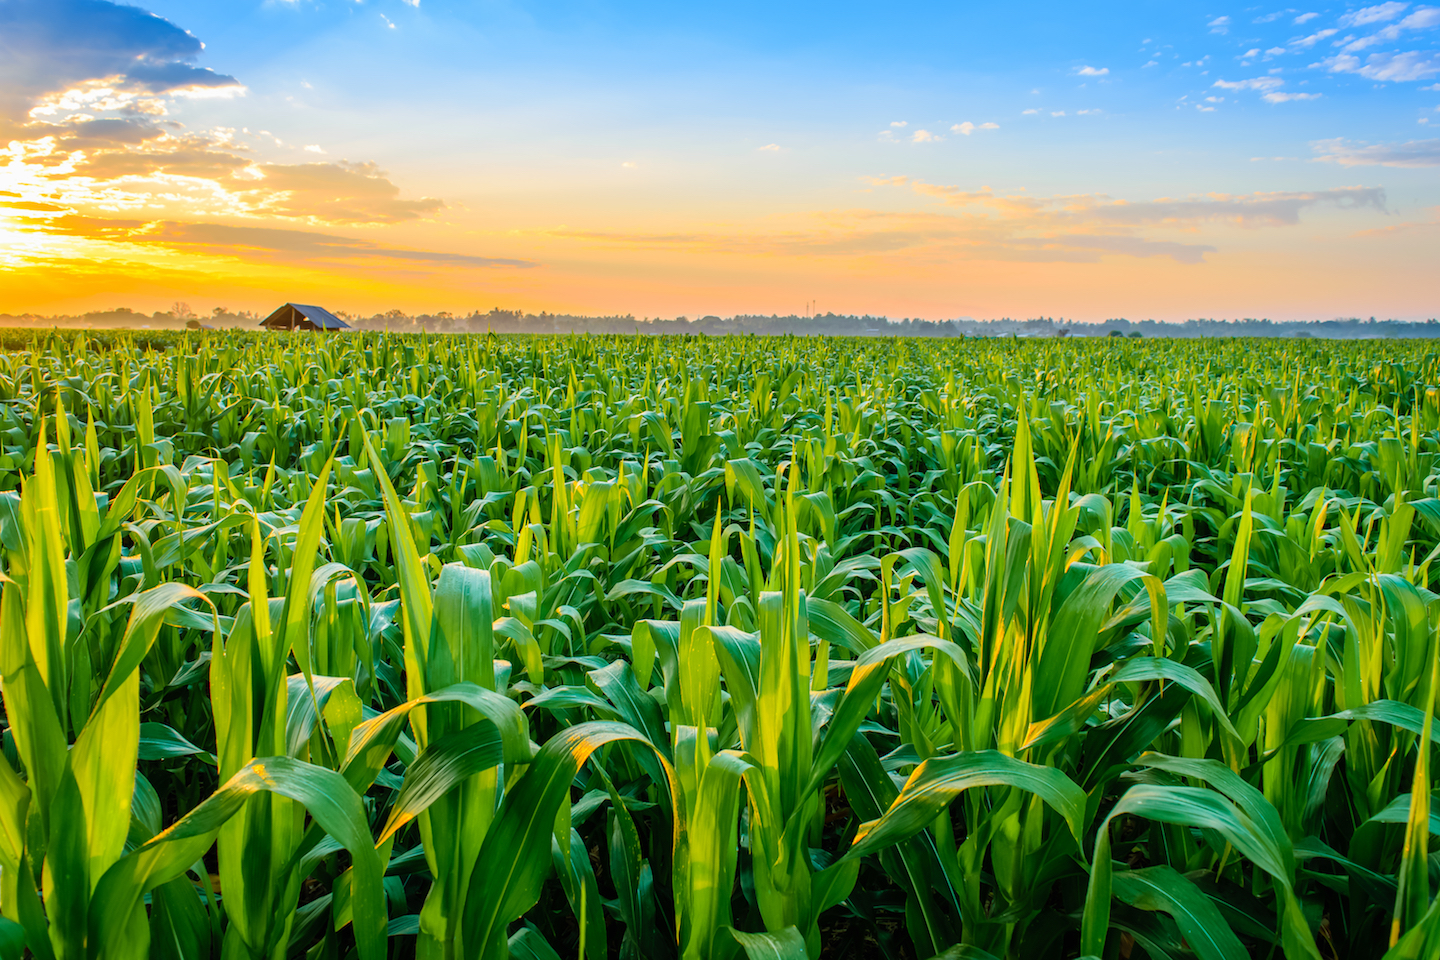 It's more valuable to grow corn for food than biofuel, according to a new study by the University of Illinois at Urbana-Champaign.